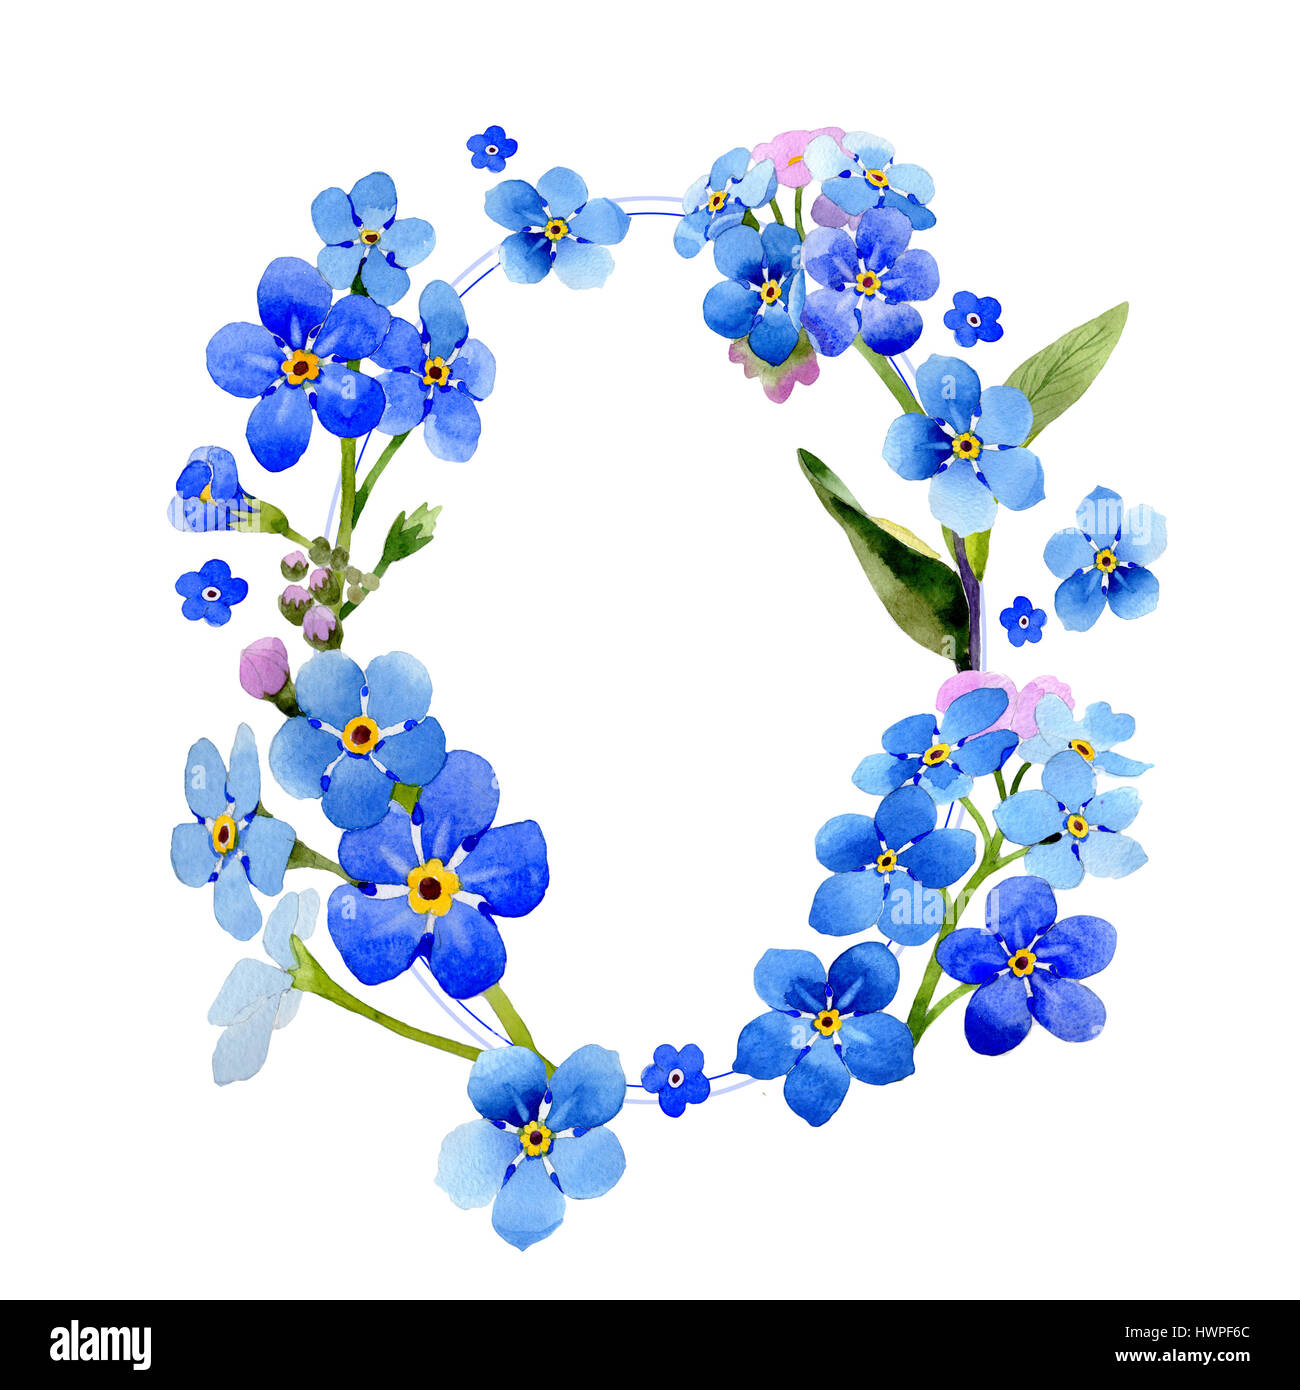 Wildflower myosotis arvensis flower wreath in a watercolor style wildflower myosotis arvensis flower wreath in a watercolor style isolated izmirmasajfo Gallery